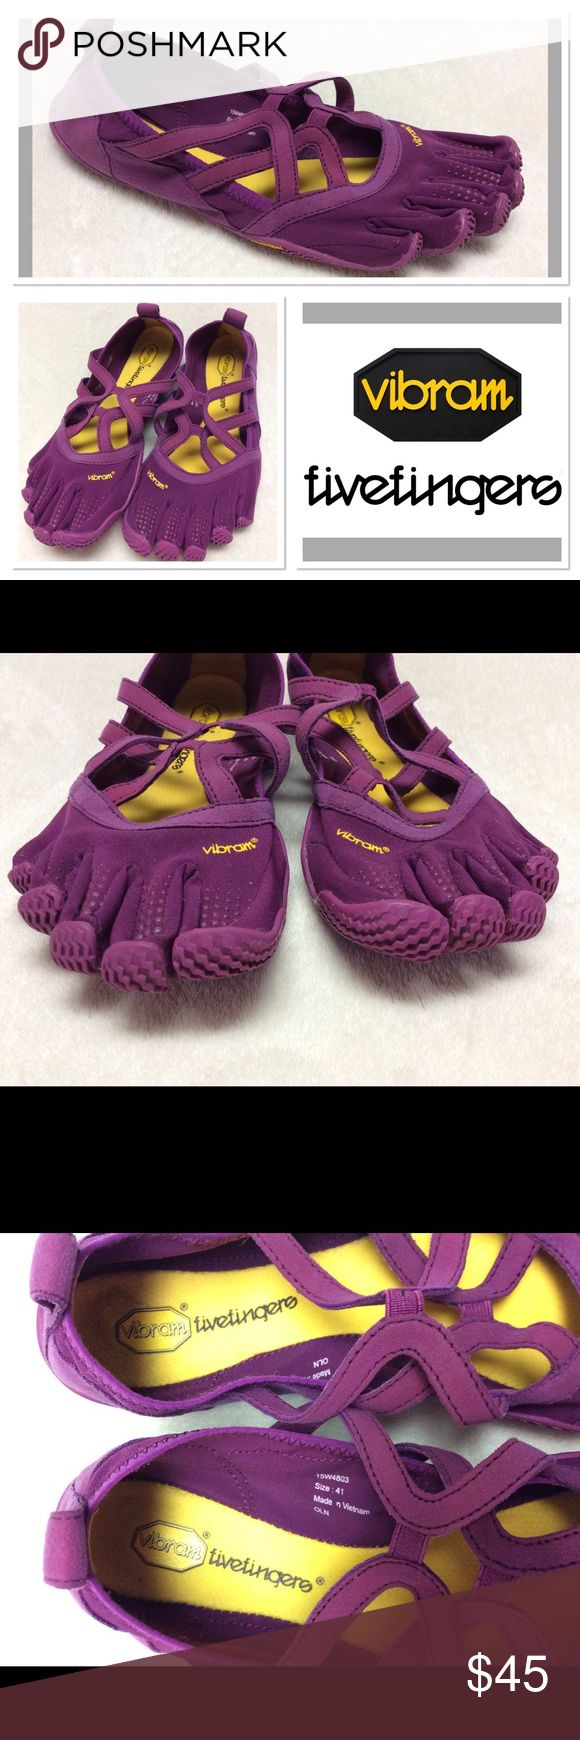 41 VIBRAM FIVE FINGERS Alitza Loop fitness shoes Vibram Five fingers Alitza Loop training and fitness shoes. This pair/color is sold out online. Very good pre-loved, cleaned and ready to go. Vibram Shoes Athletic Shoes